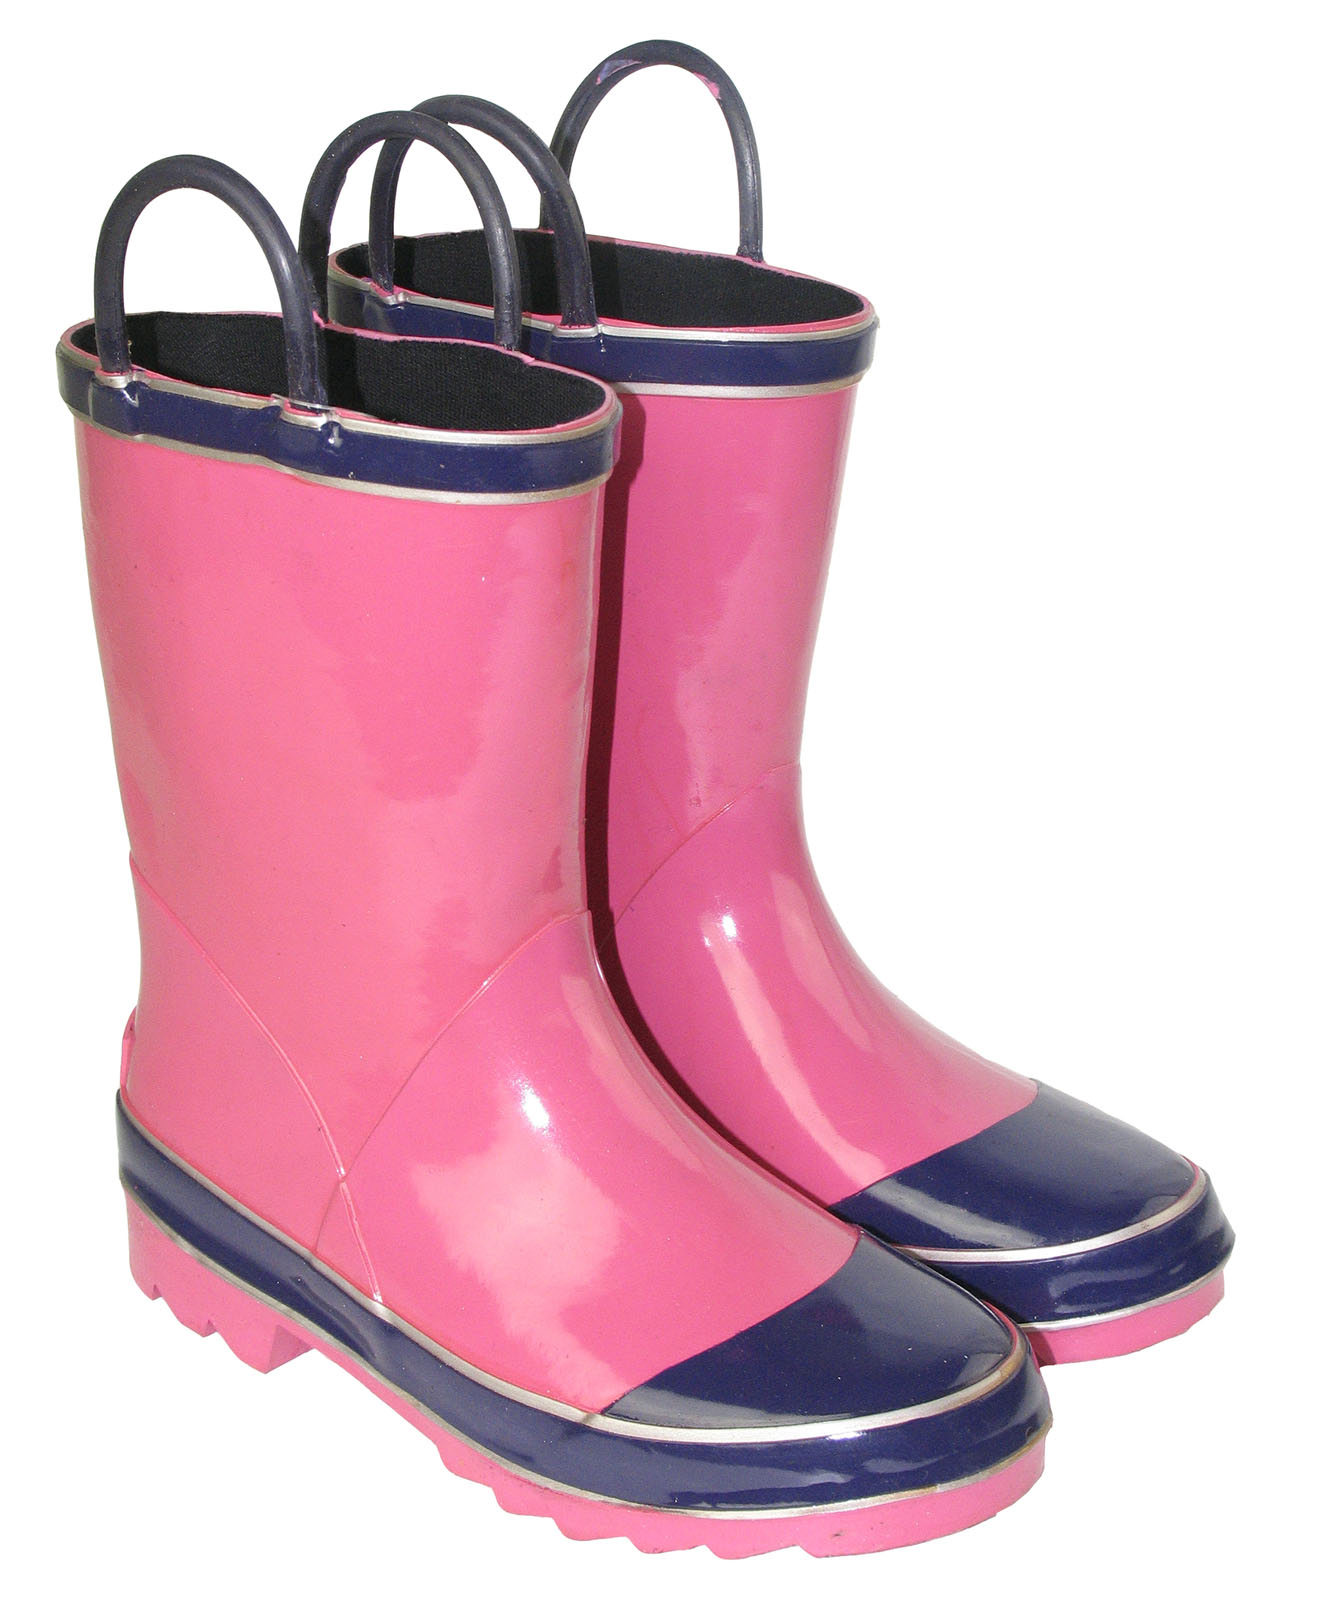 Youth Rain Boots MIsMGi0U